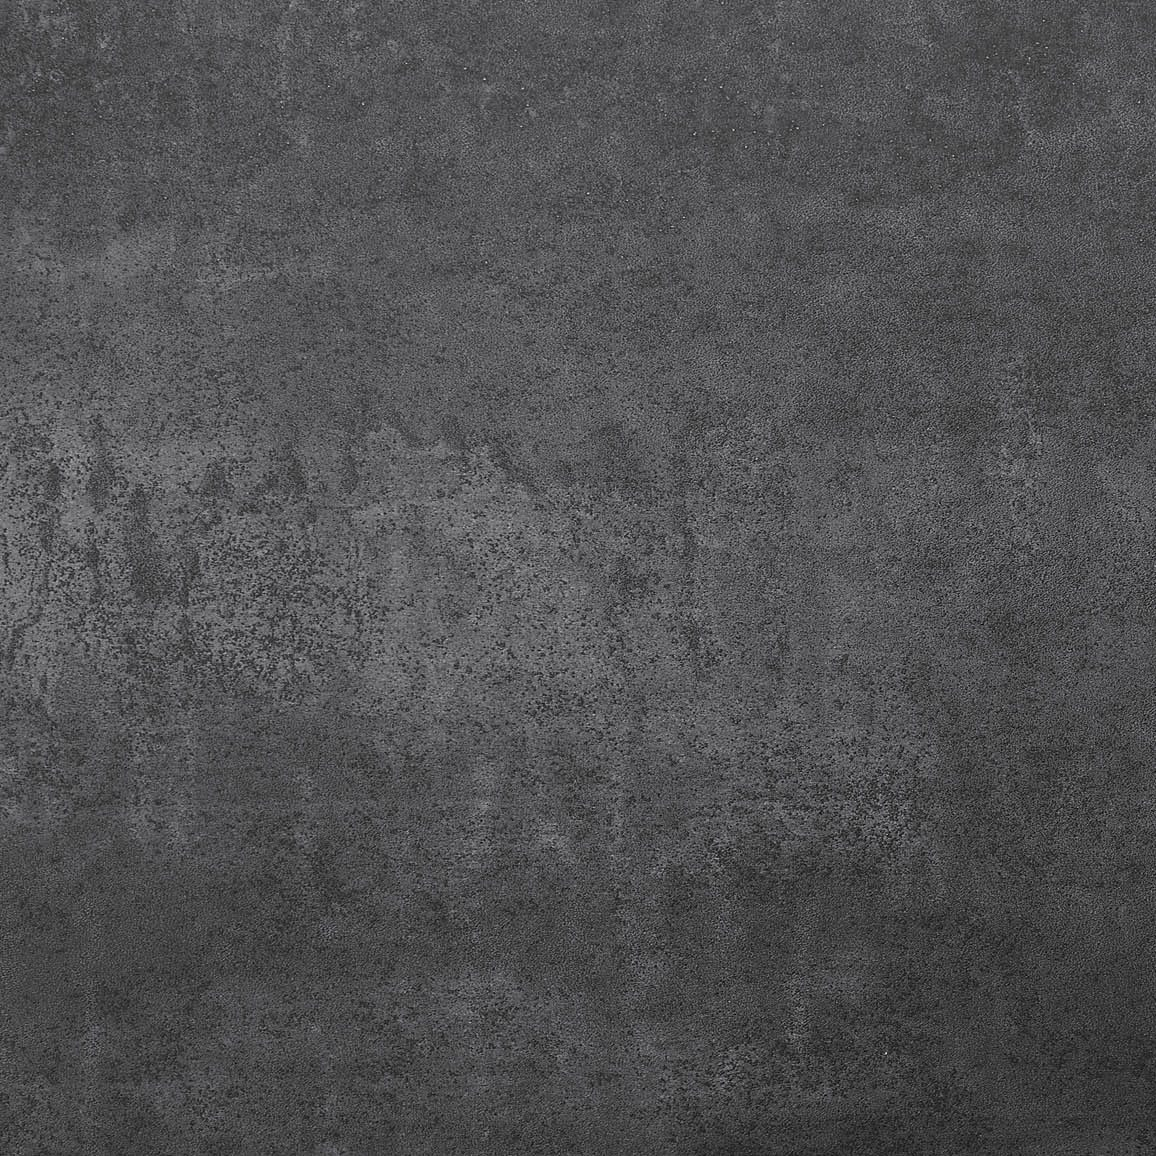 Neolith Iron Grey Marble Trend Marble Granite Tiles